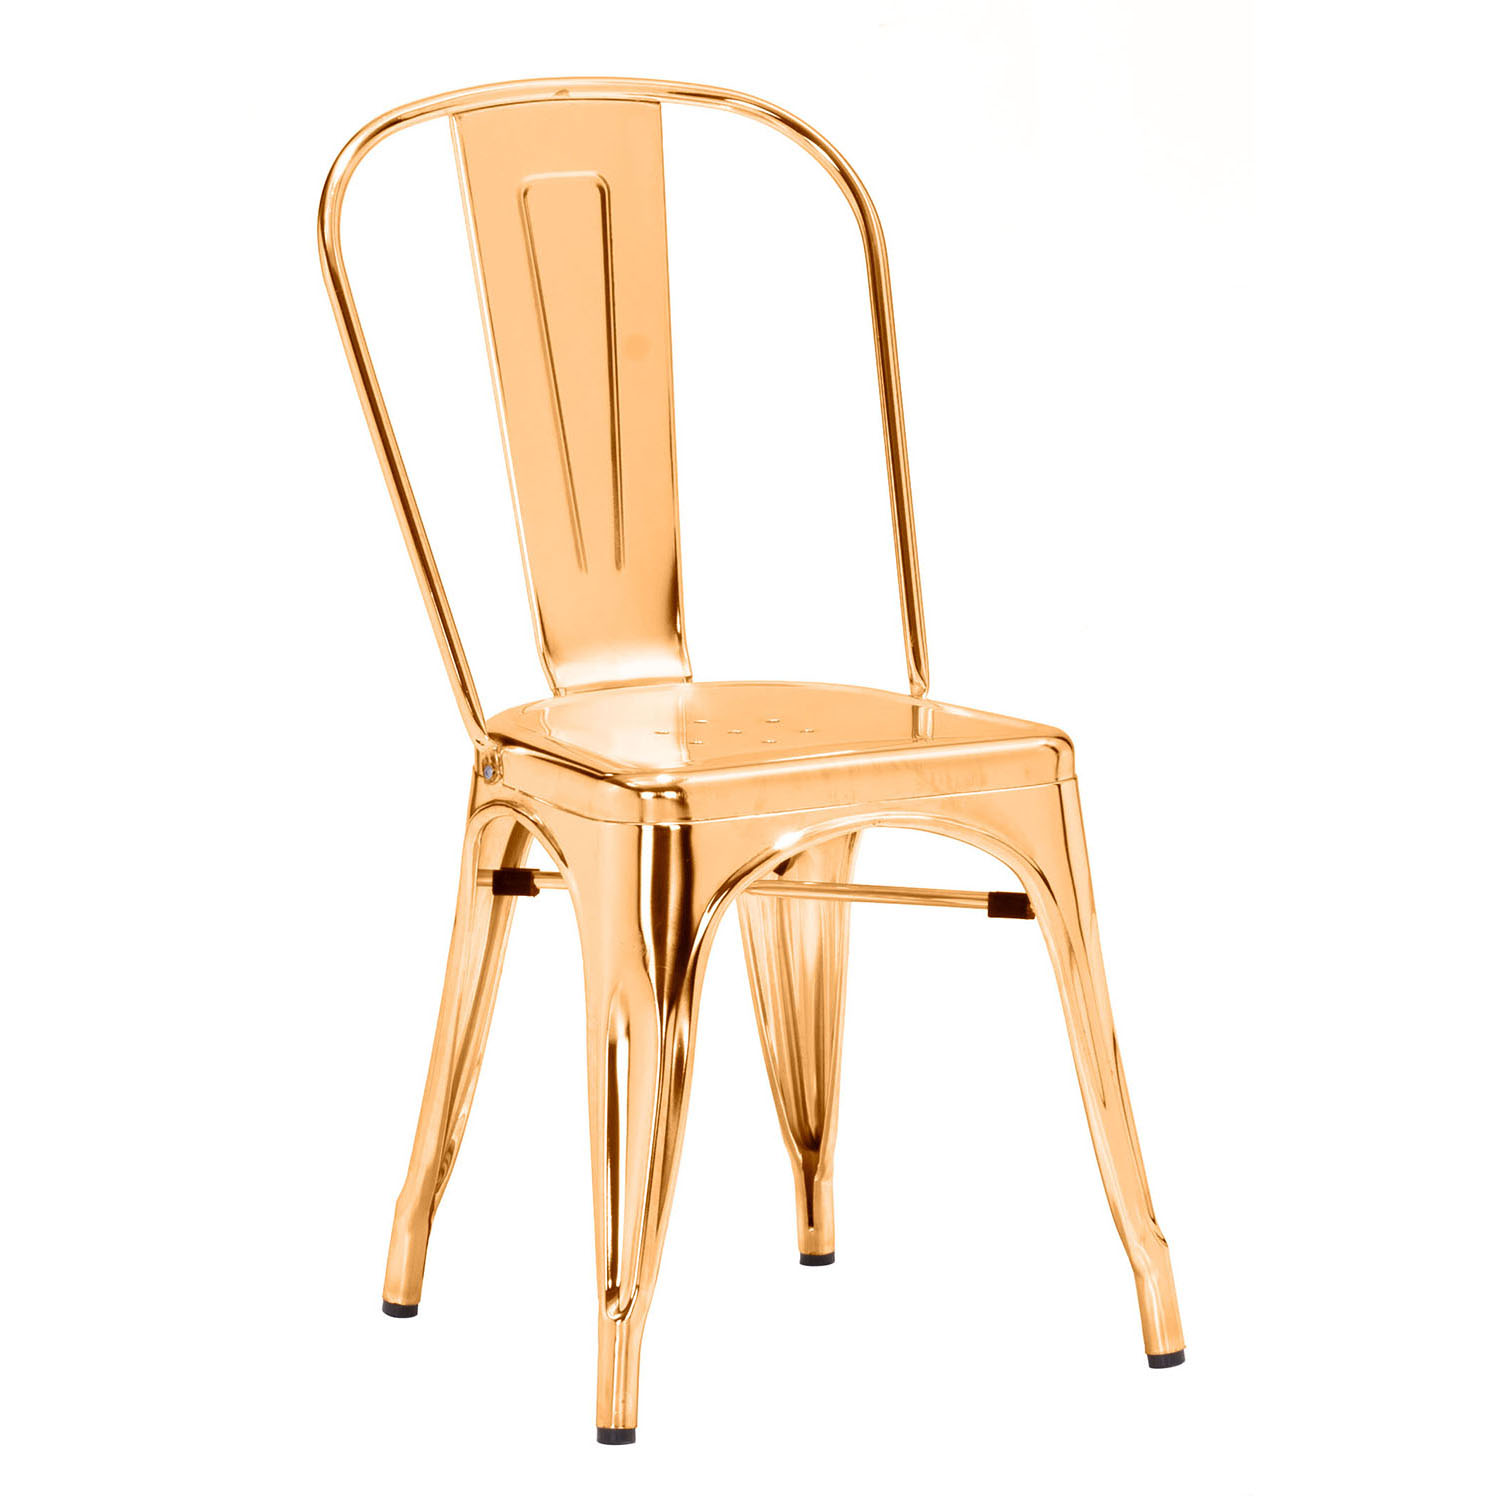 Buy Era-Elio-Dining-Chair Product Image 174